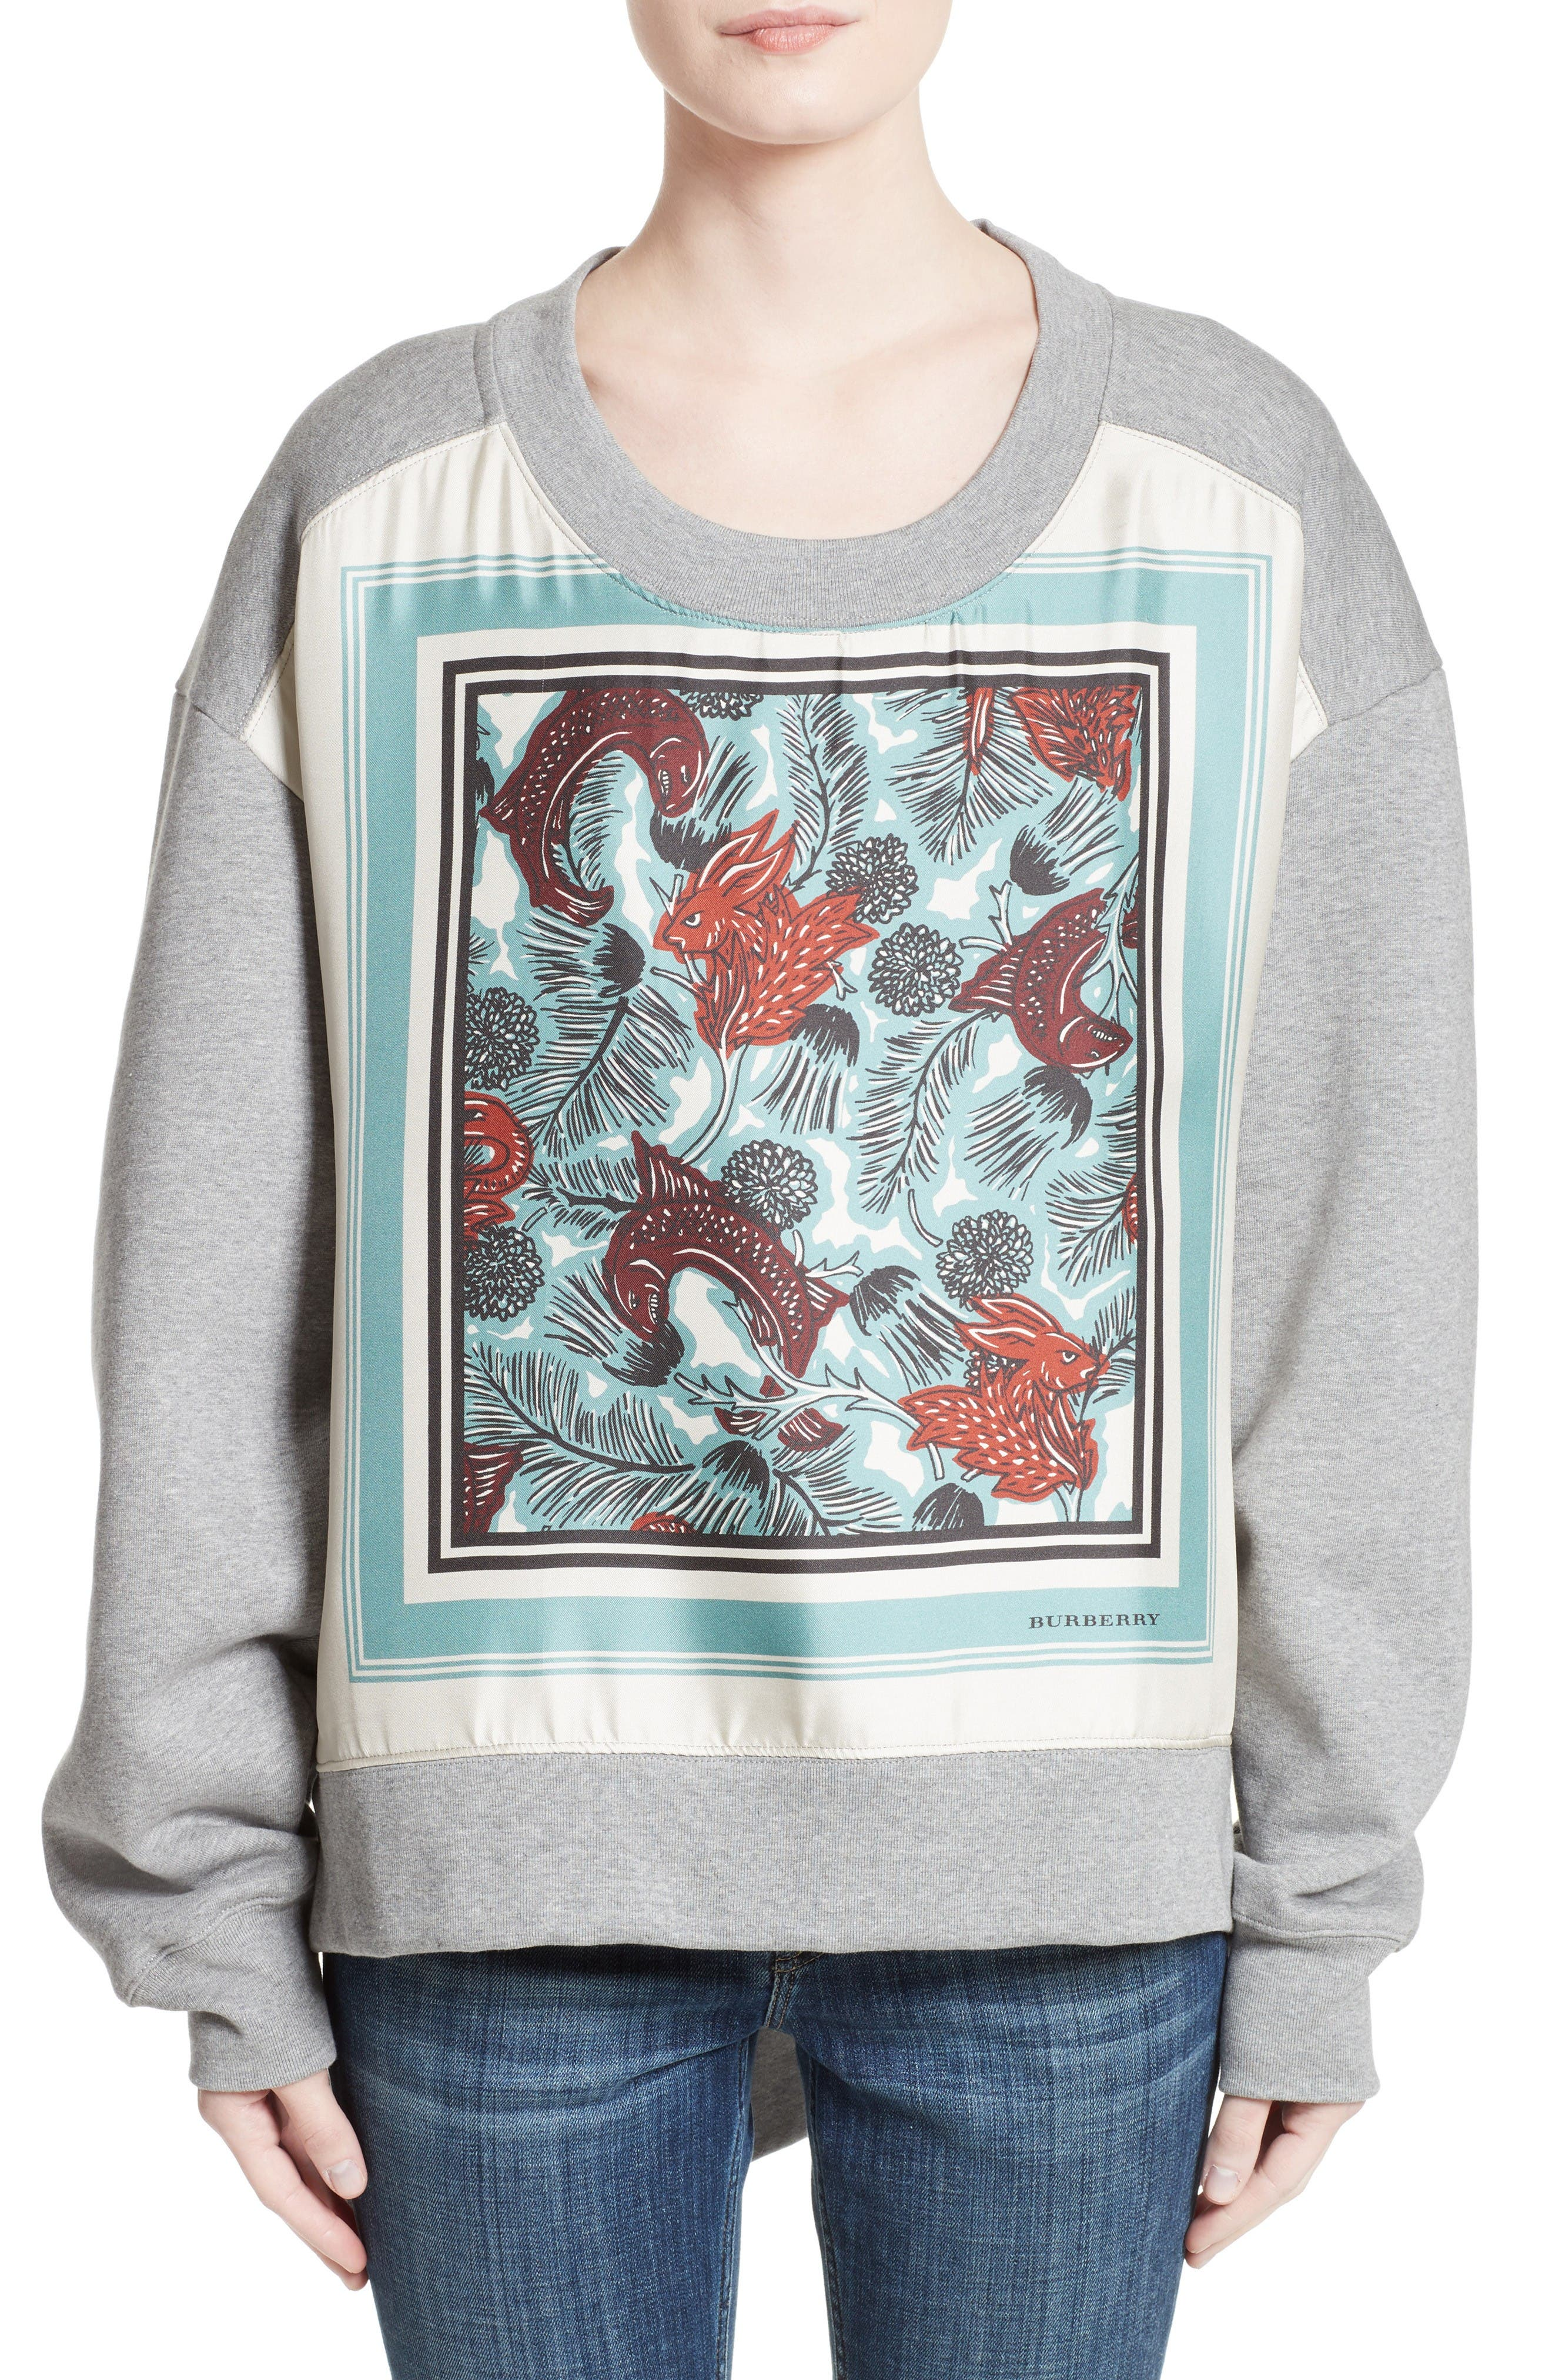 Main Image - Burberry Mente Graphic High/Low Sweatshirt